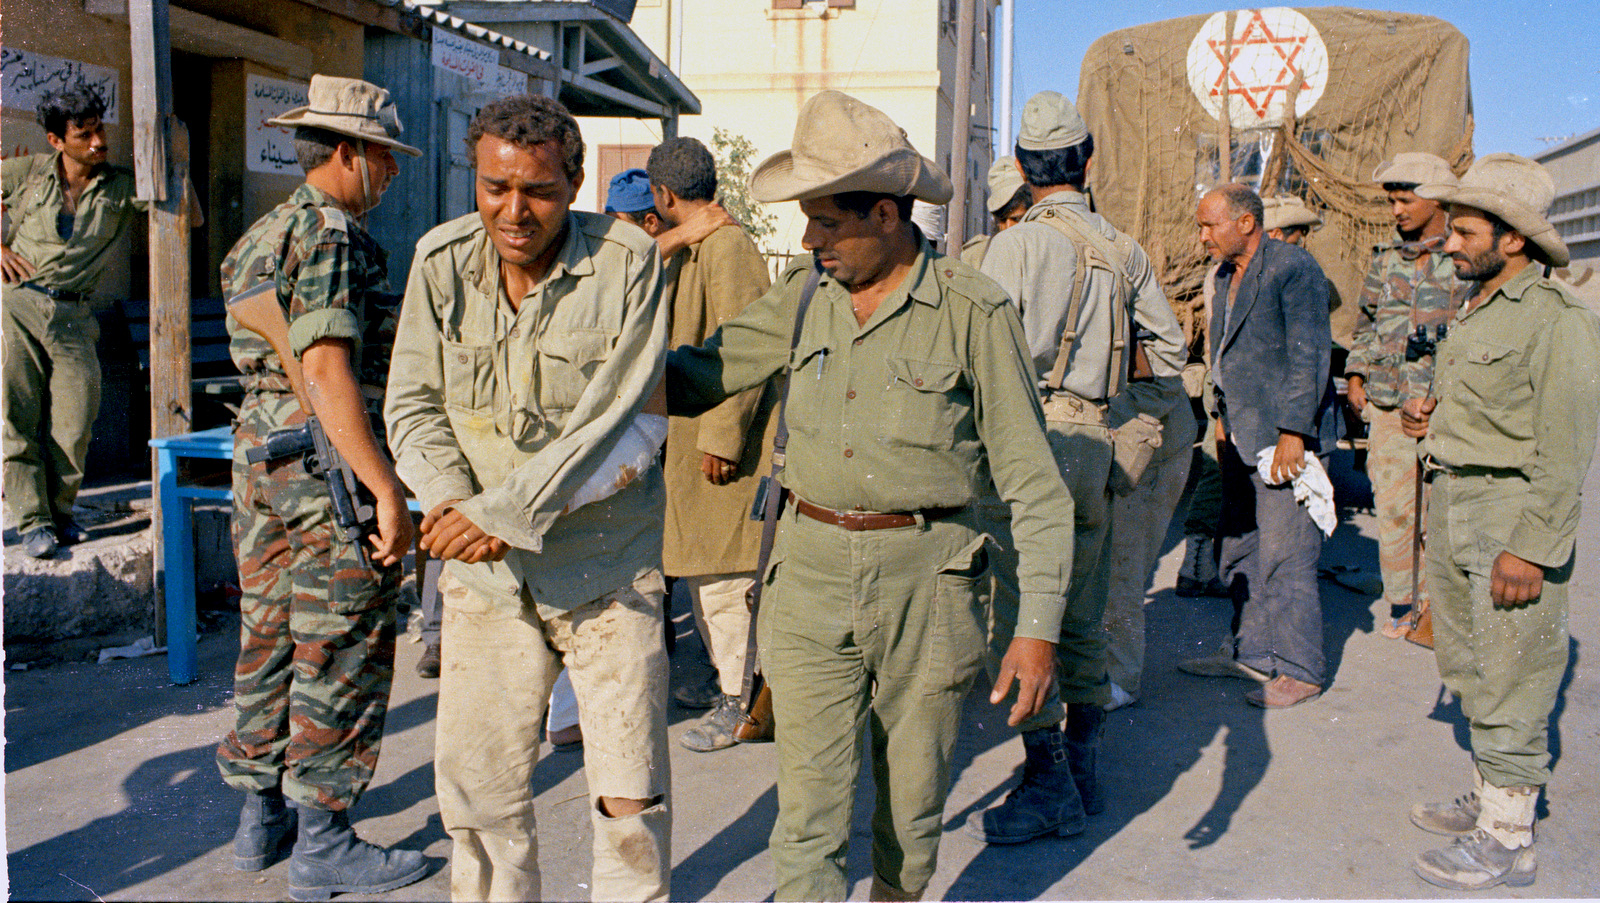 An Israeli soldier is seen with an Arab prisoner, June 1967. (AP Photo)